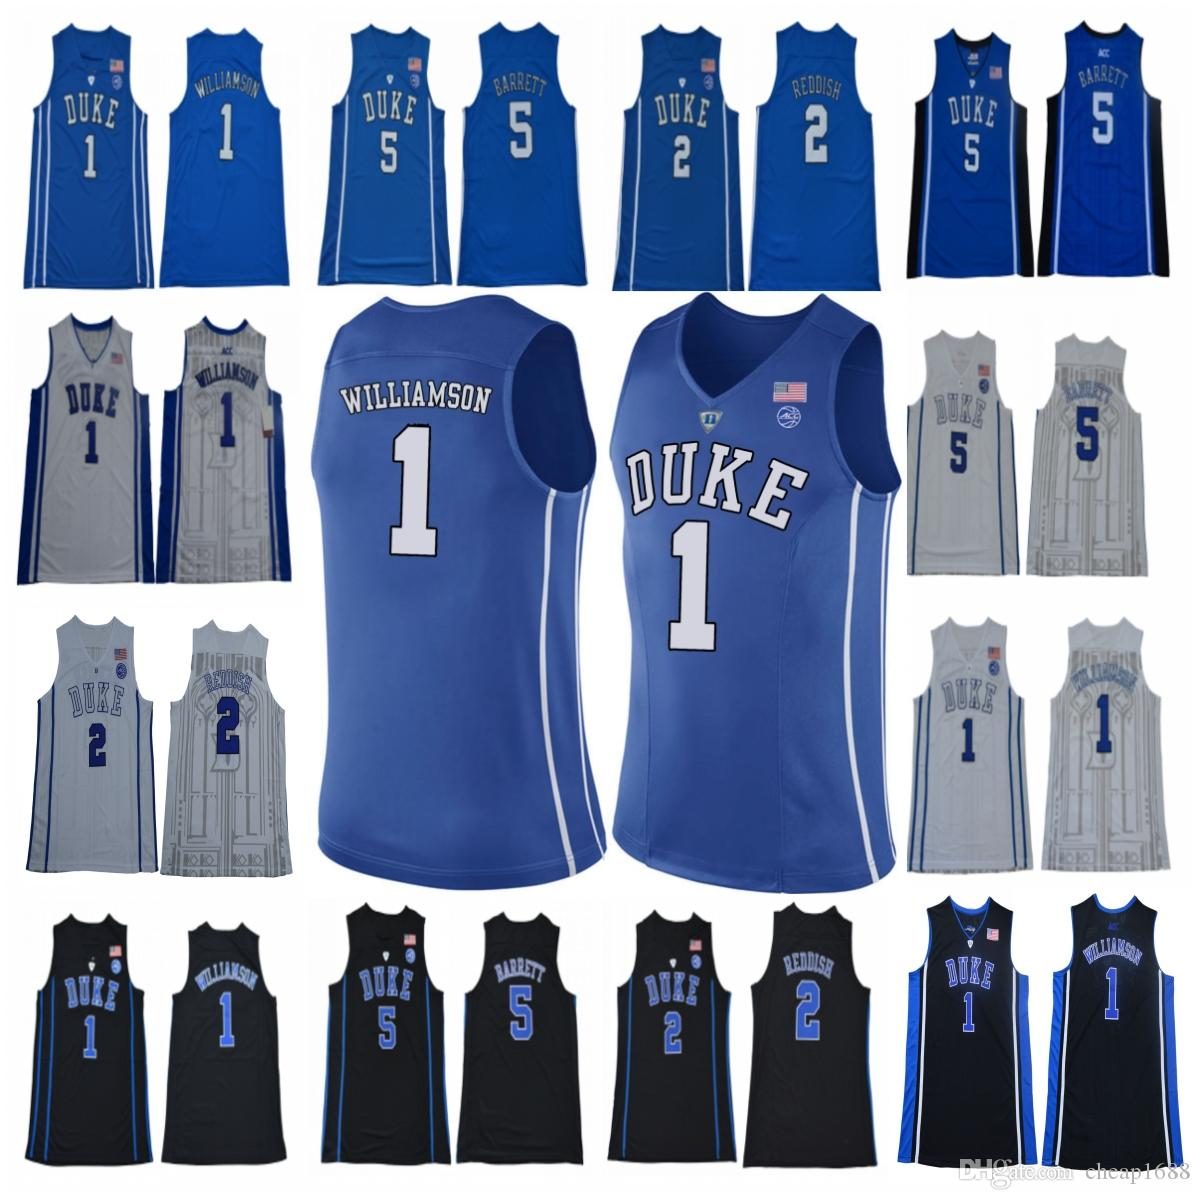 e79c5ceba123b Acheter NCAA Duke Blue Devils 1 Zion Williamson 5 RJ Barrett 2 Cam Rouge  Blanc Blanc Noir Hommes Jeunes College Basketball Jerseys De $15.74 Du  Cheap1688 ...